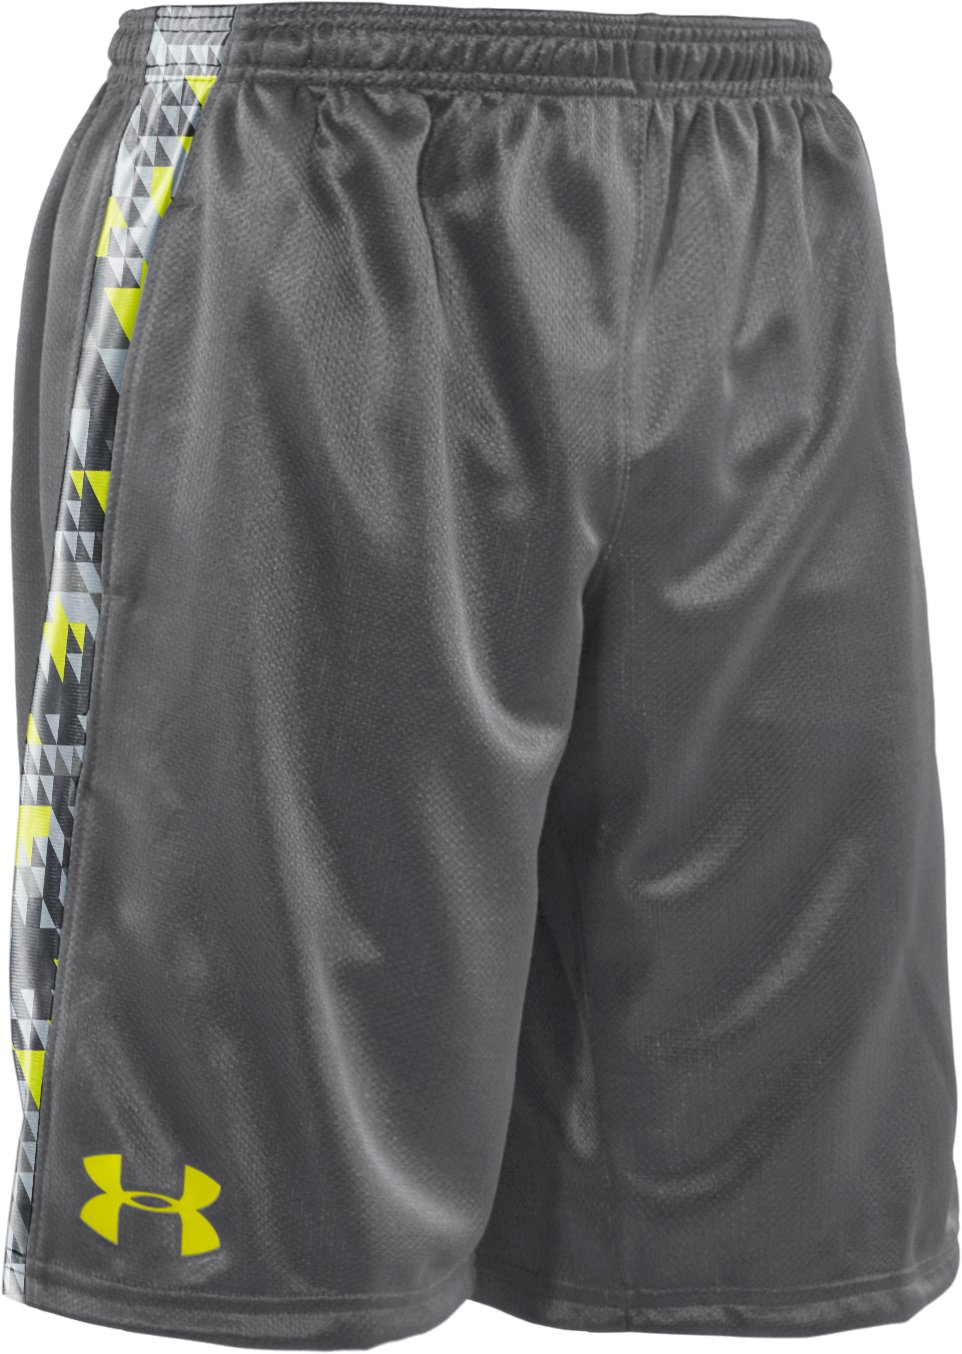 "Boys' UA Ultimate Printed 9"" Shorts, Graphite"